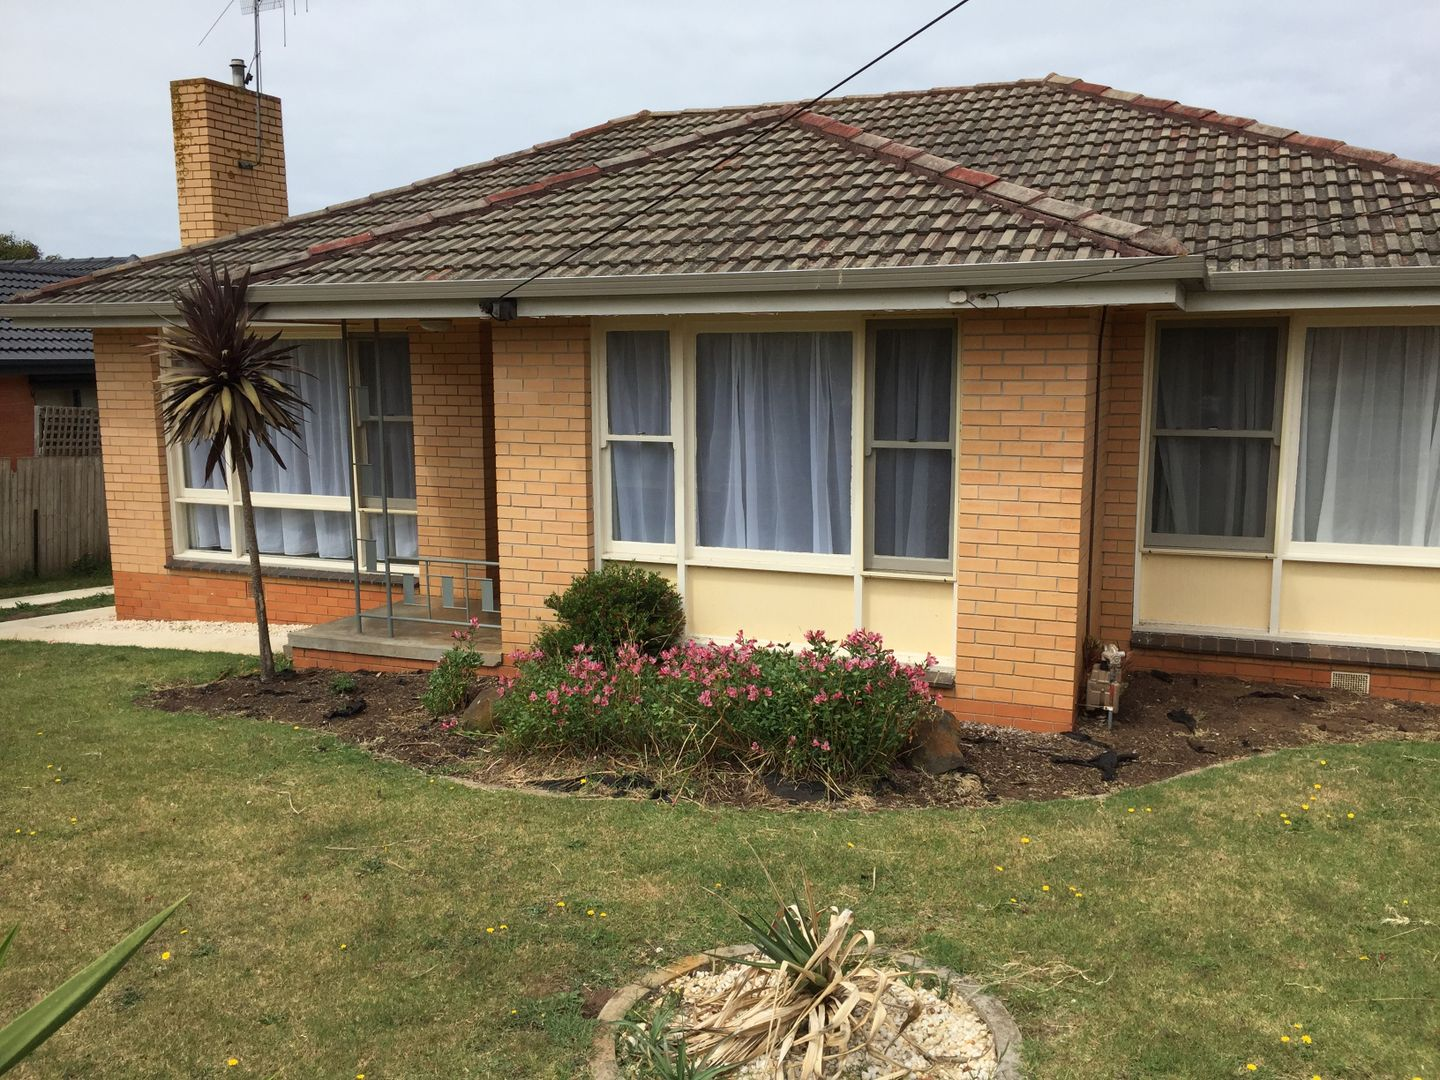 15 St James Cres, Warrnambool VIC 3280, Image 0